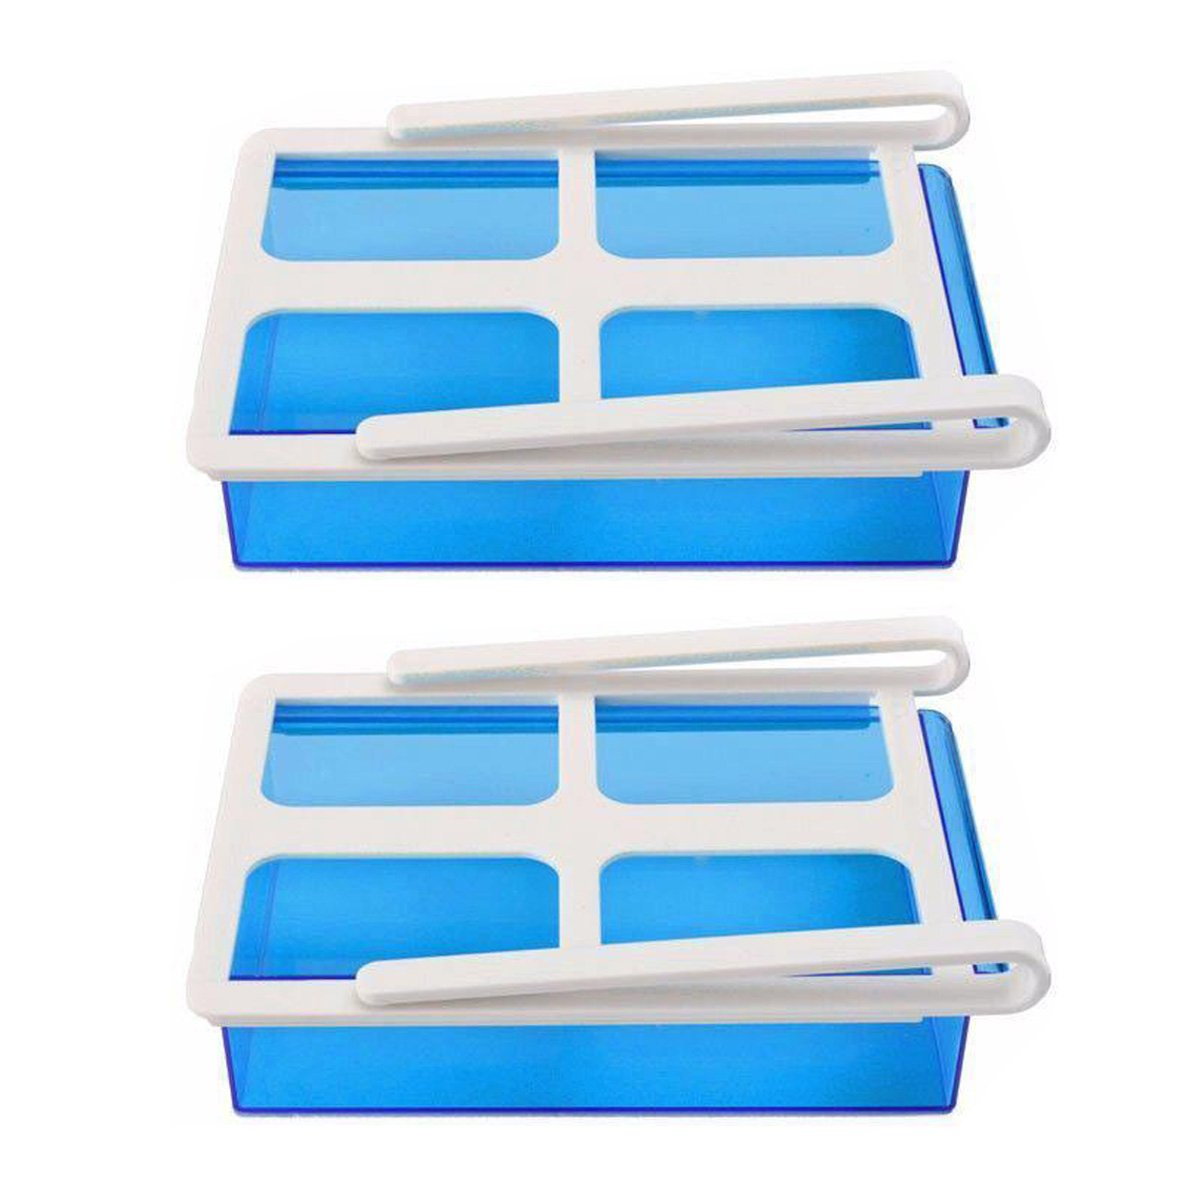 Auntwhale 2 Pack Refrigerator Storage Box Slide Fridge Freezer Organizer Refrigerator Storage Rack Shelf Drawer